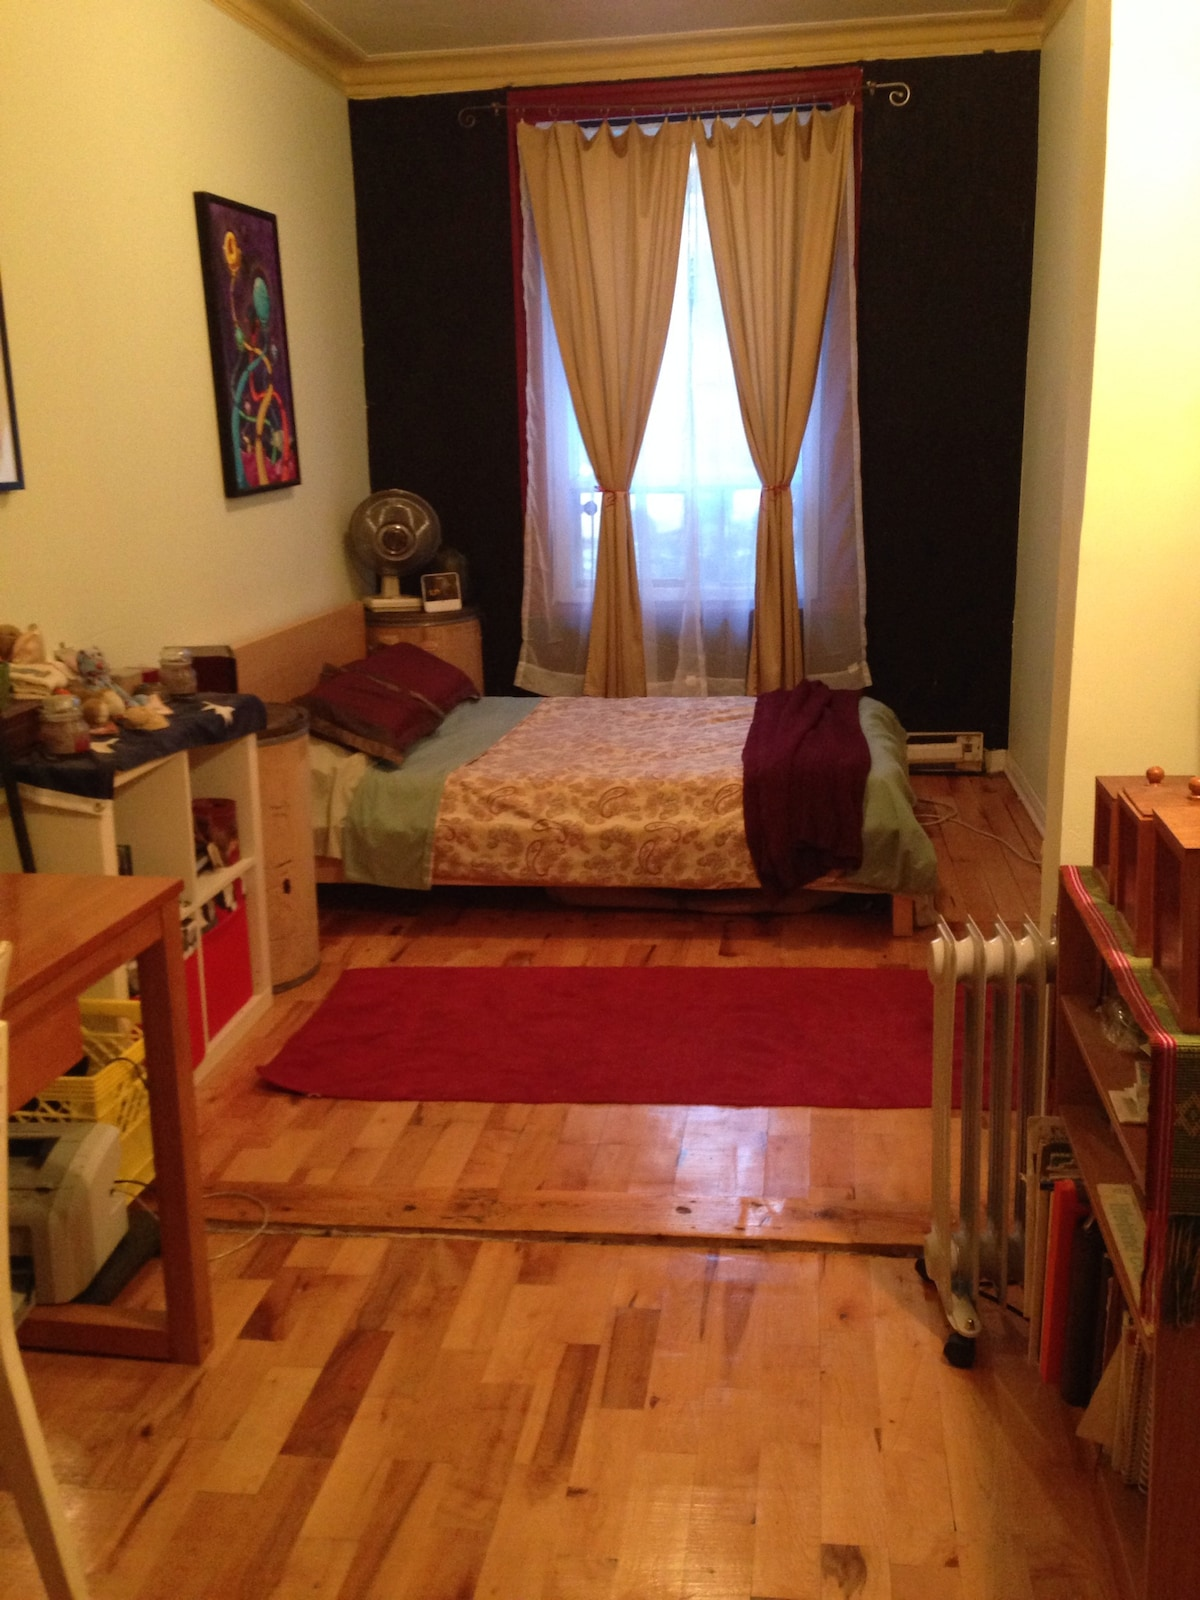 There are two bedrooms with double beds